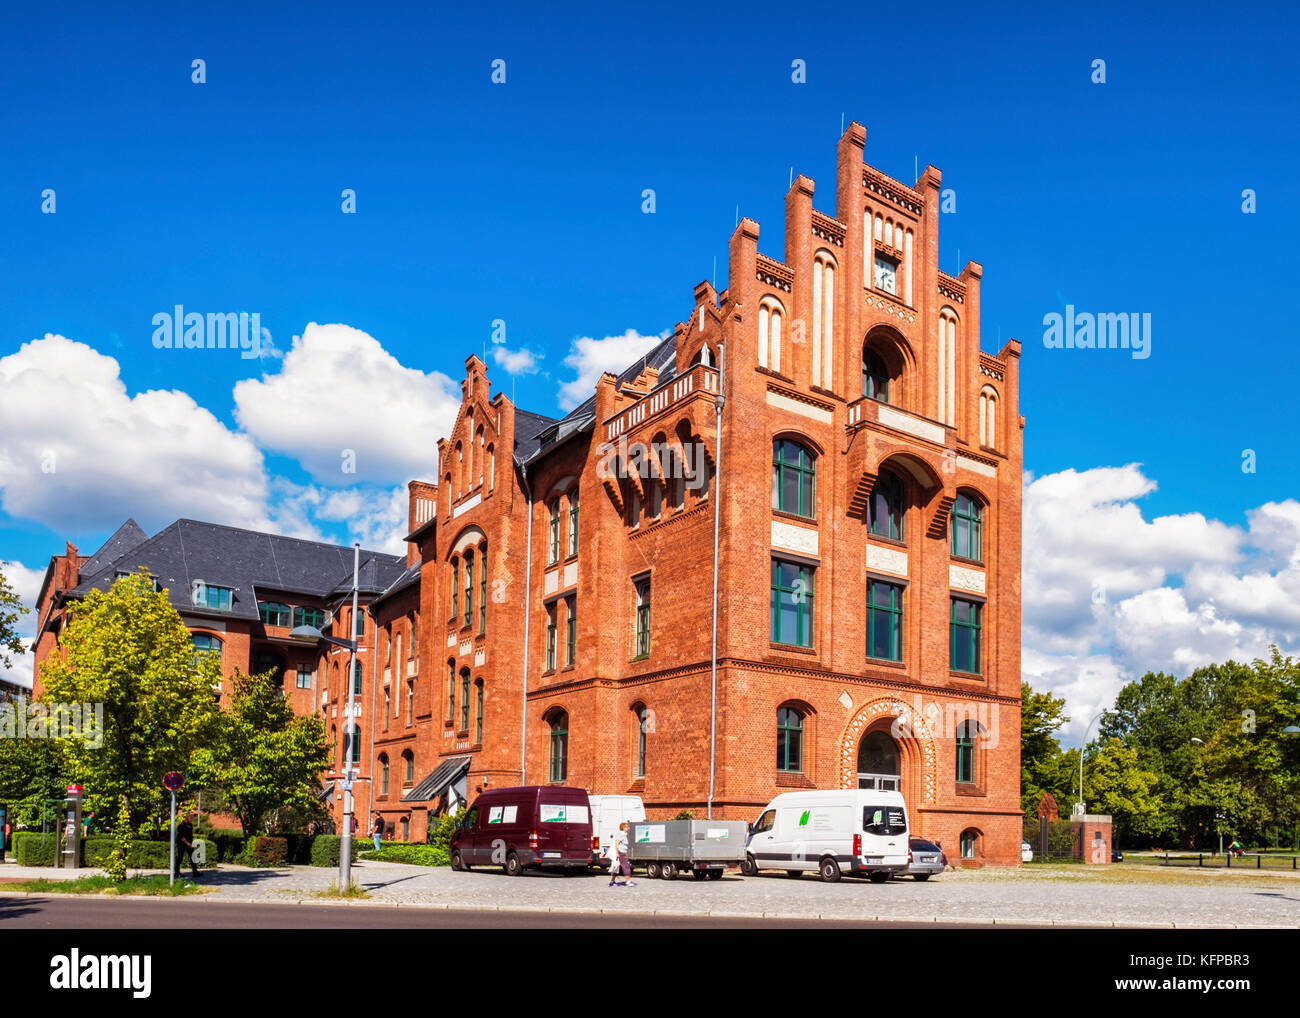 Berlin,Tegel. Part of old Borsig company buildings, manufacturers of steam engines & locomotives,brick historic - Stock Image